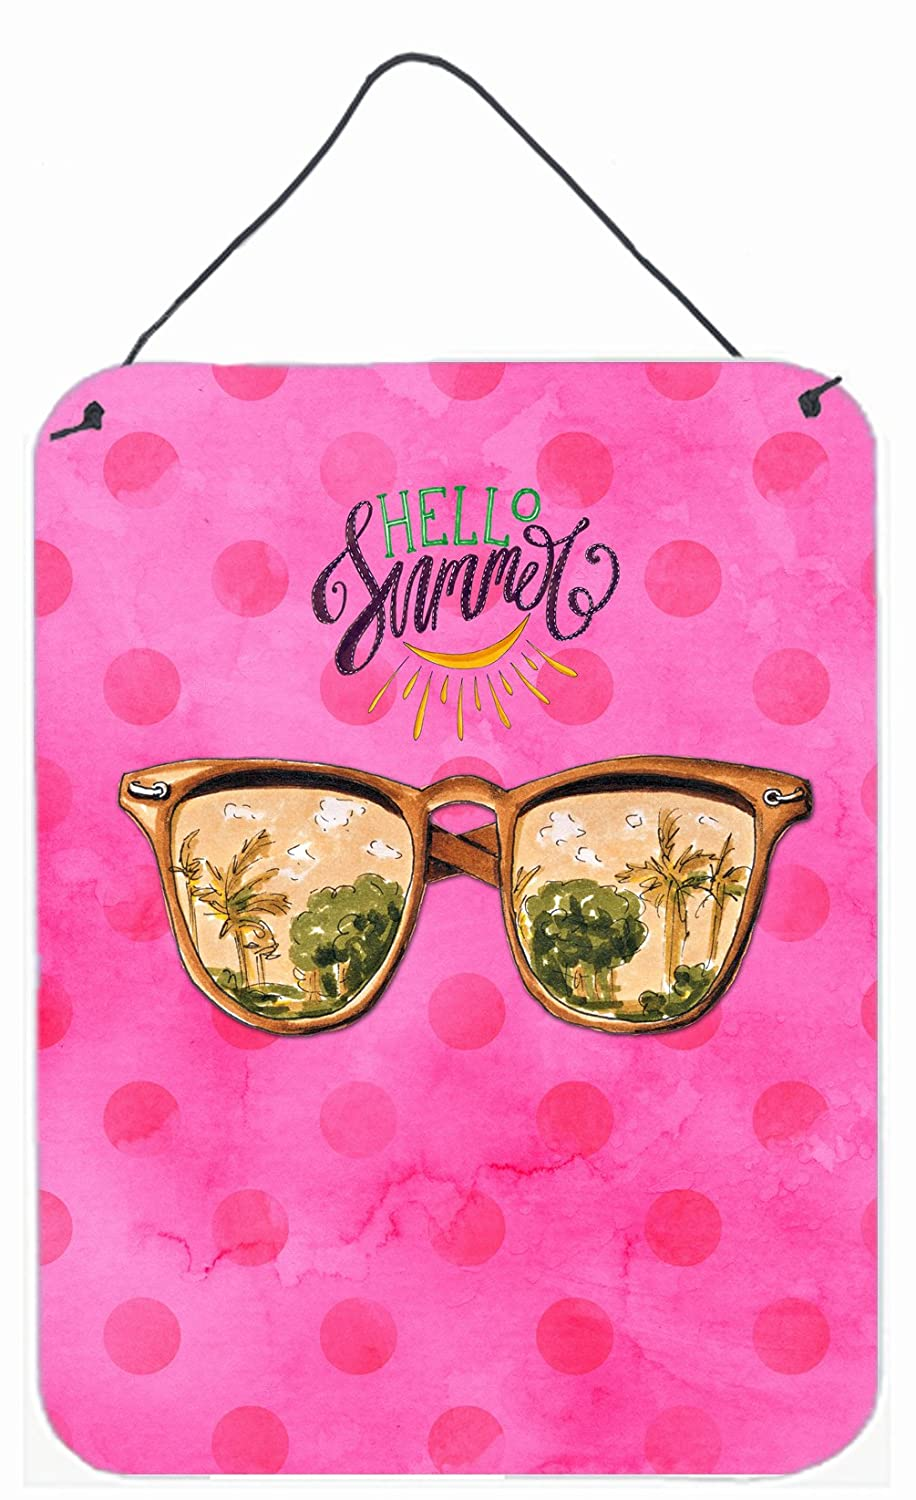 Caroline's Treasures Beach Sunglasses Pink Polkadot Metal Print 16hx12w Multicolor